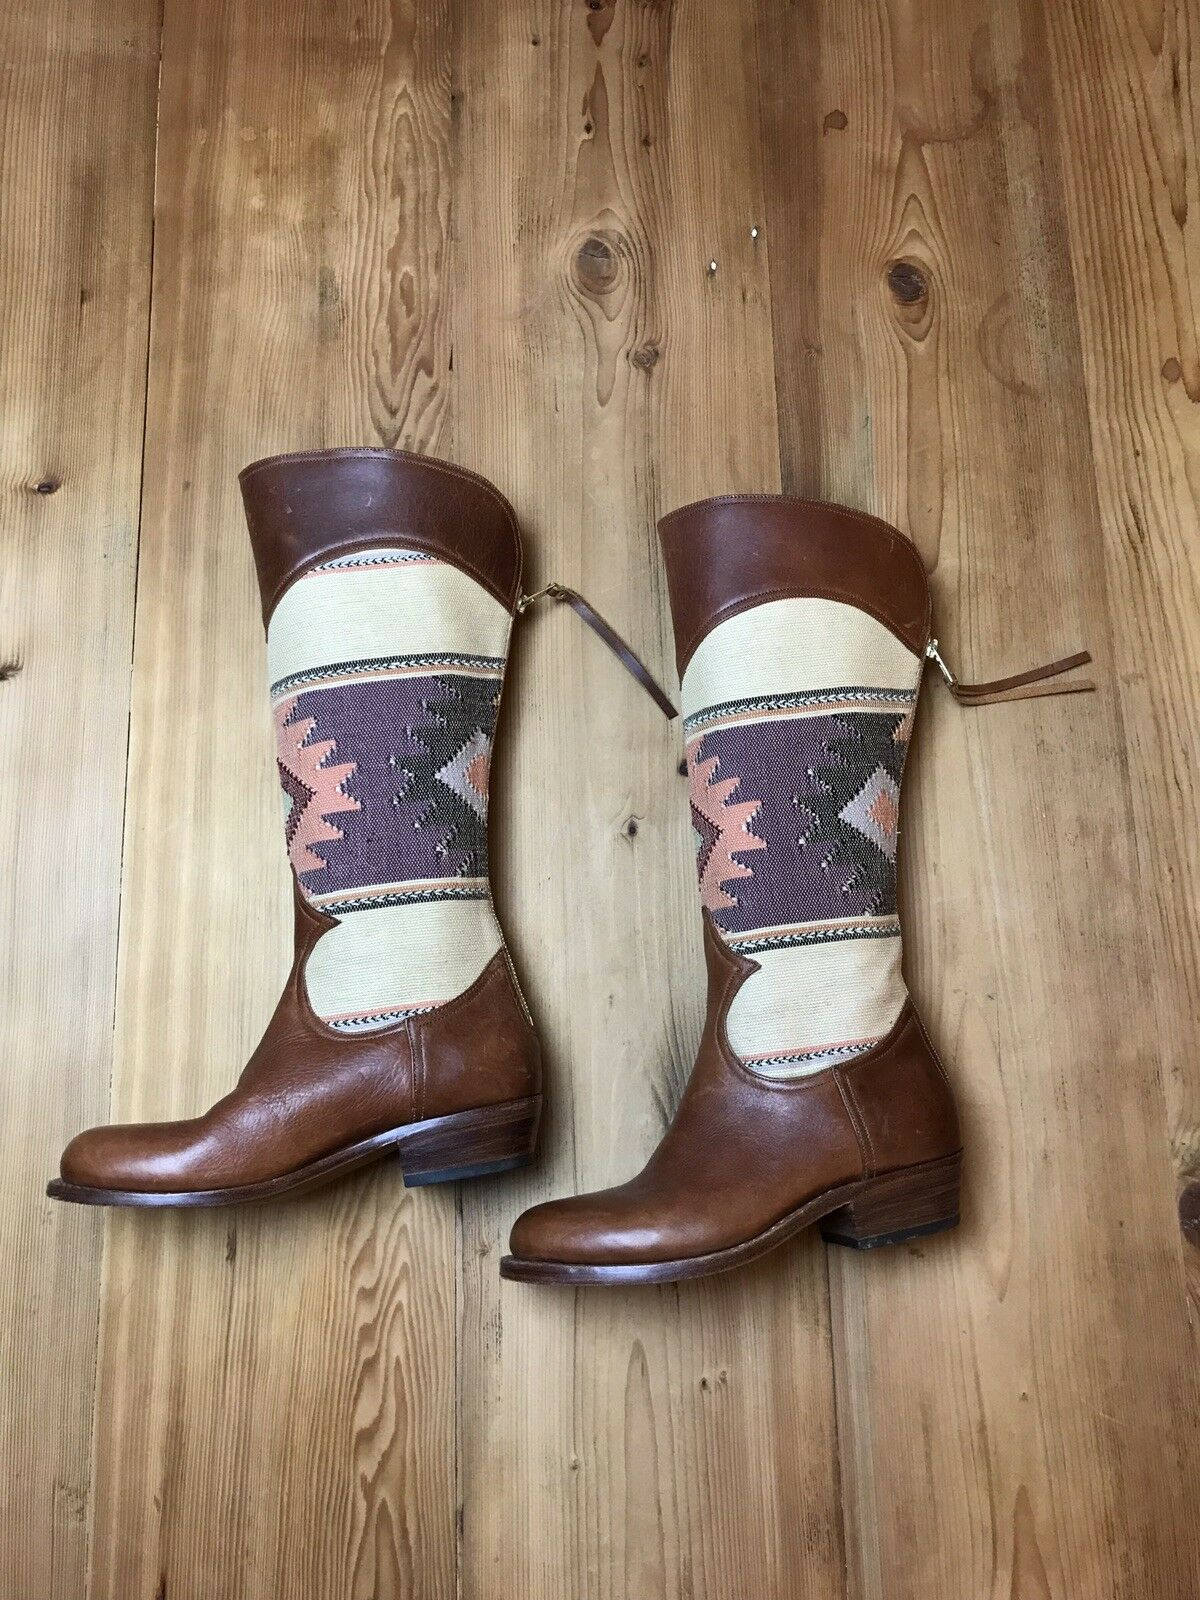 damen's Uxibal braun Guatemalan Guatemalan Guatemalan Leather and Hand Woven Fabric Tall Stiefel Größe 8M 2bde56